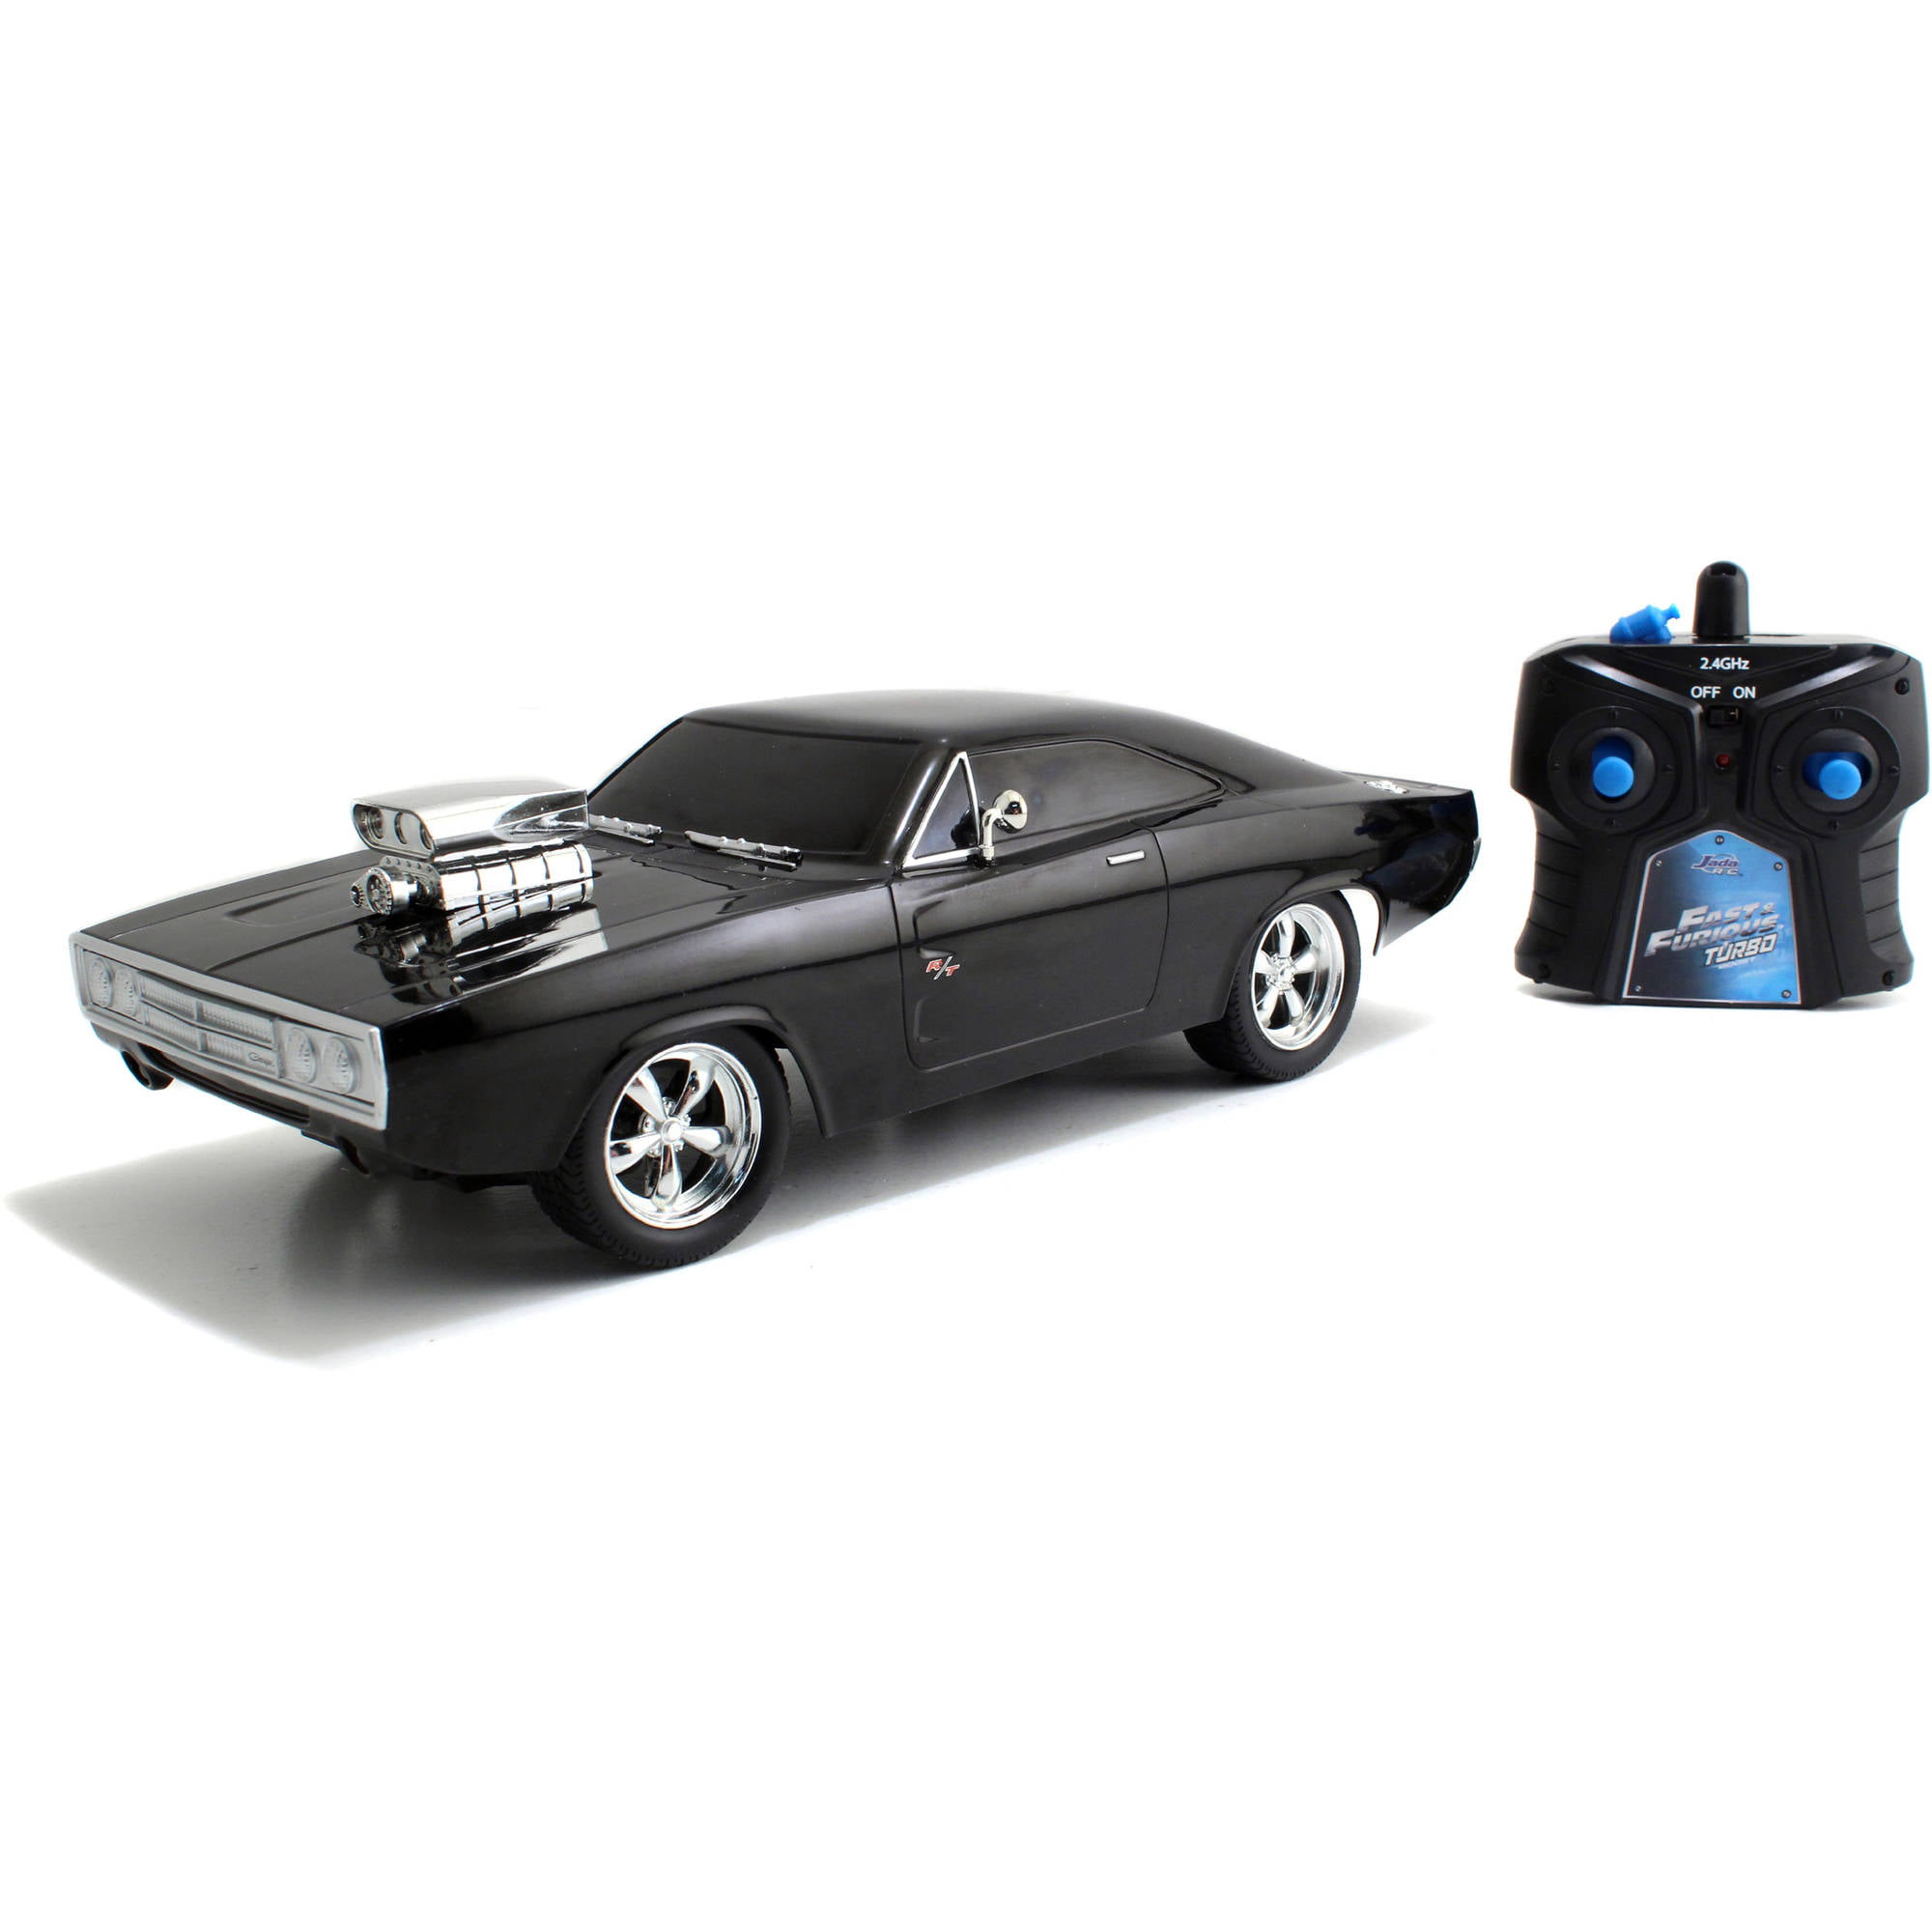 Jada Toys Fast and Furious 1:16 Radio Control Car, Dom's Charger R T by Jada Toys